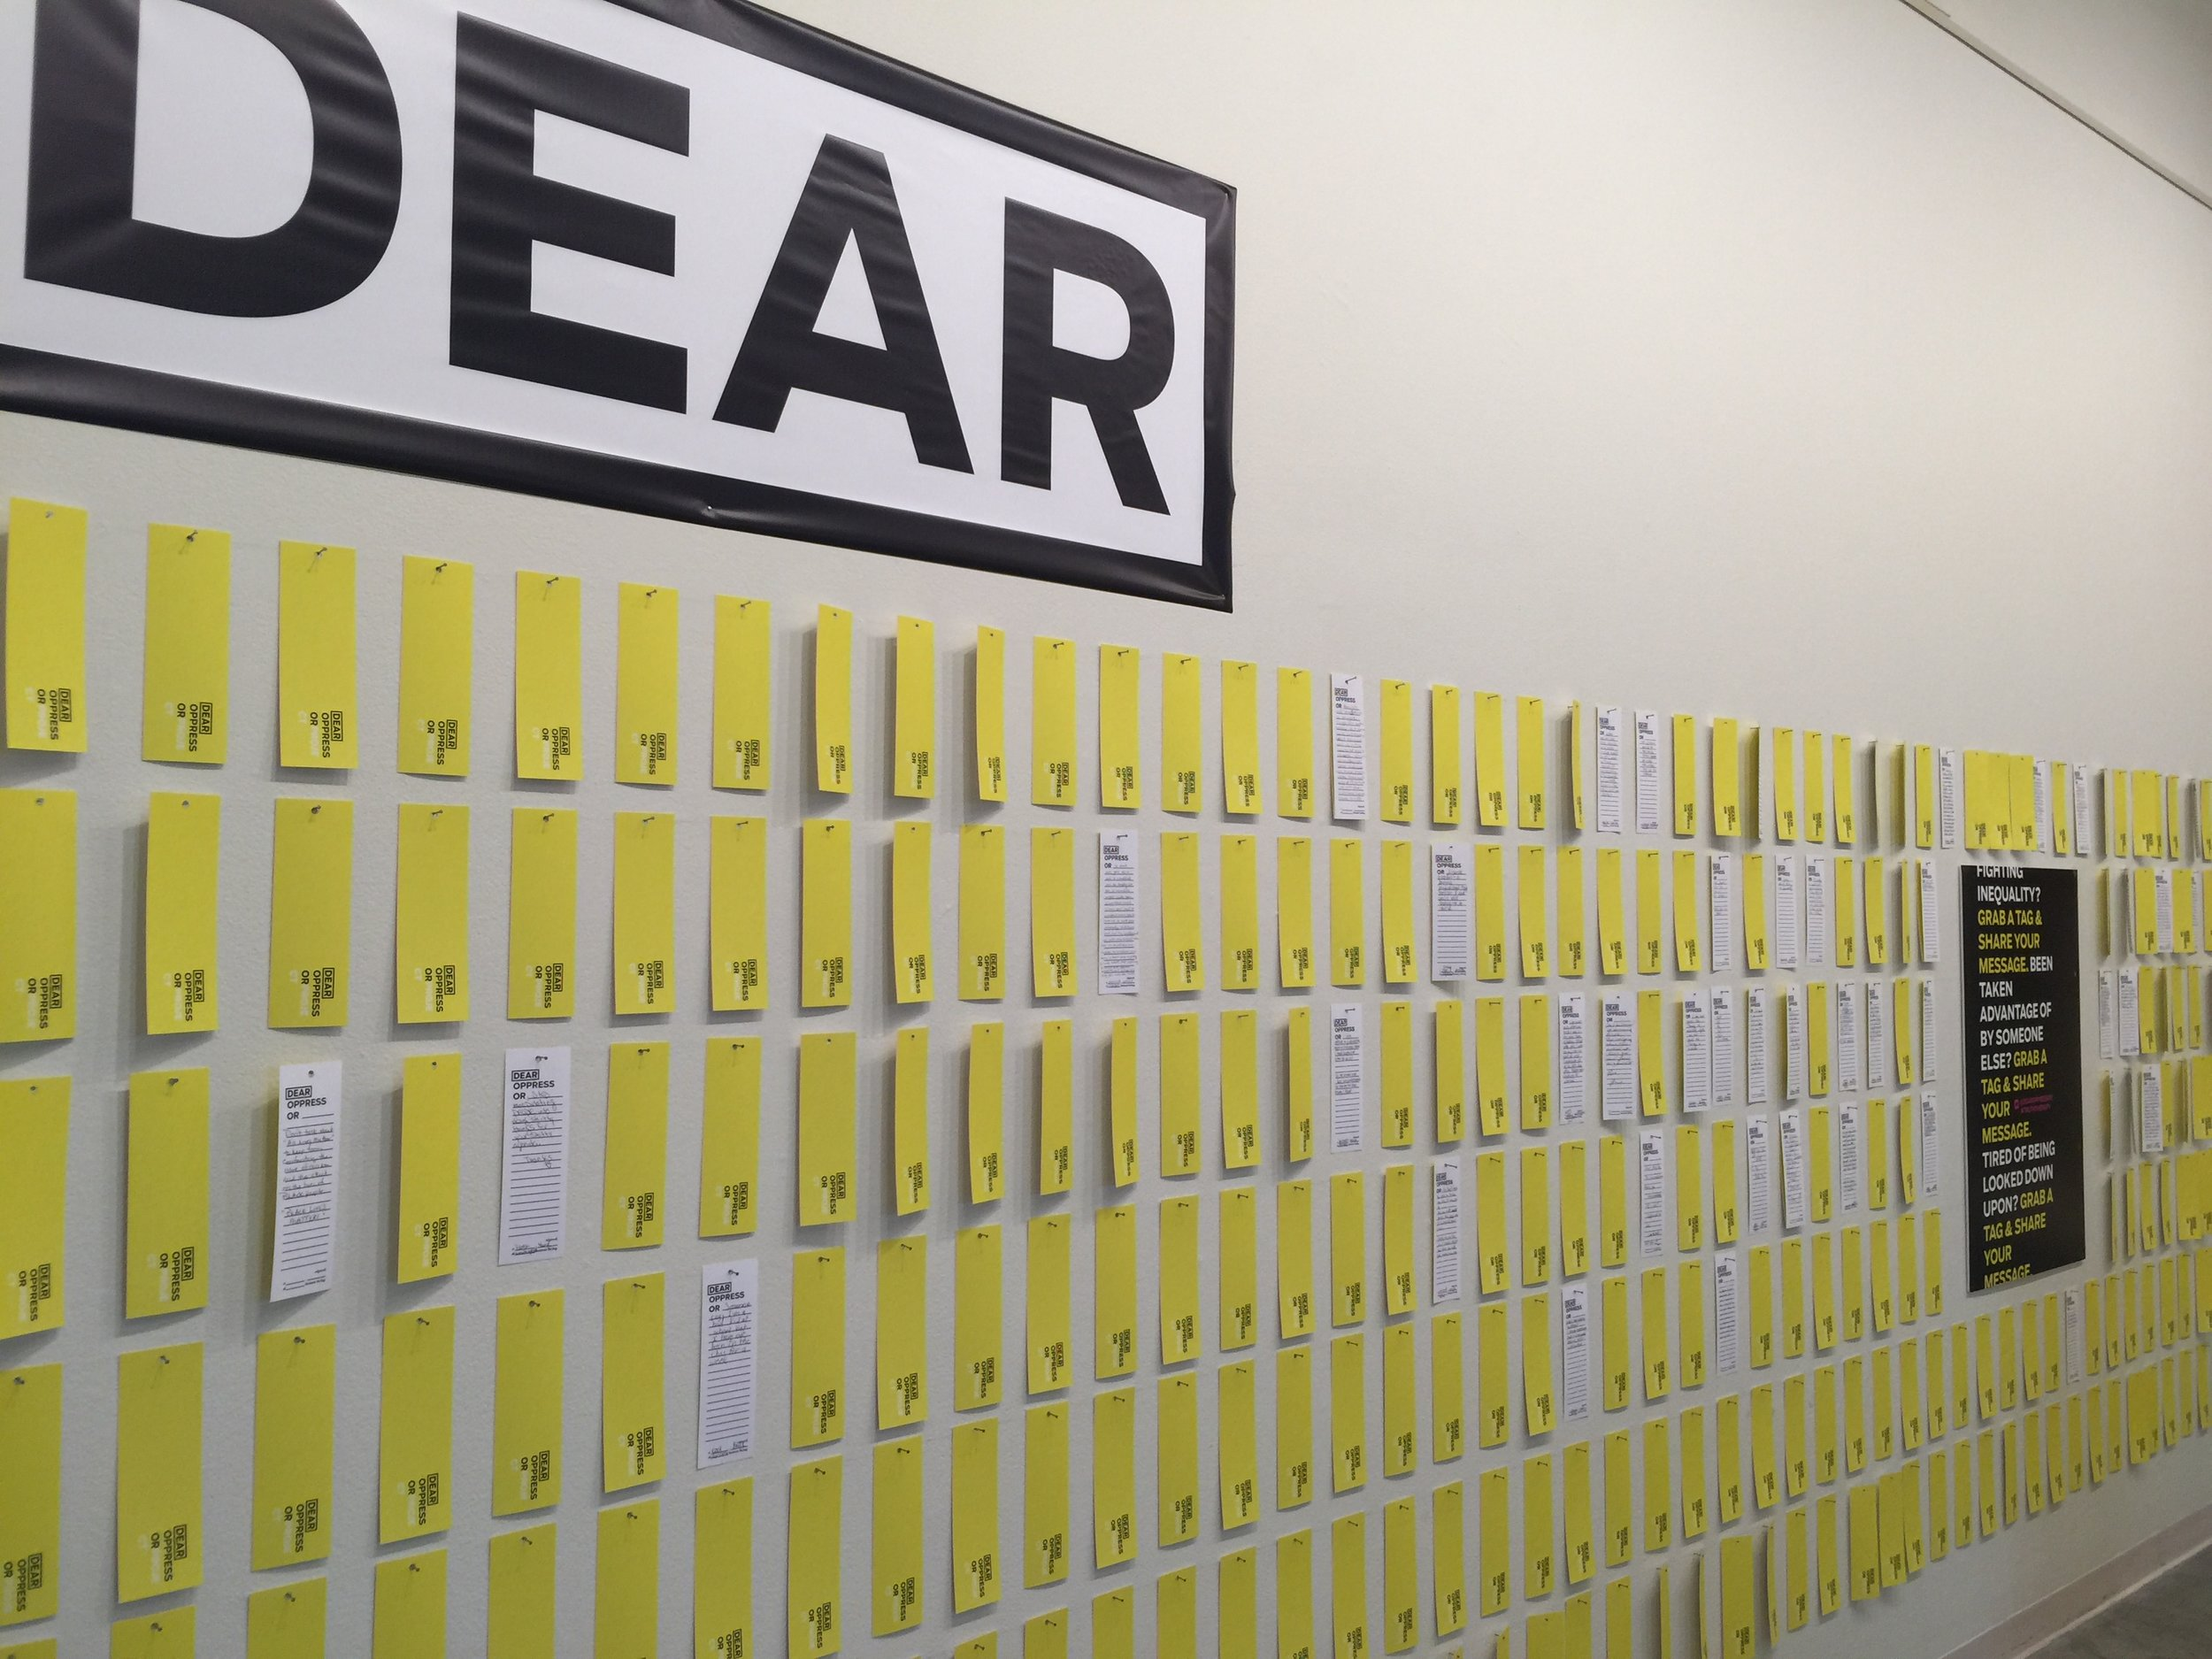 Dear Oppressor Project, 2015, a digital, temporary public art, and workshop series addressing individual oppression.